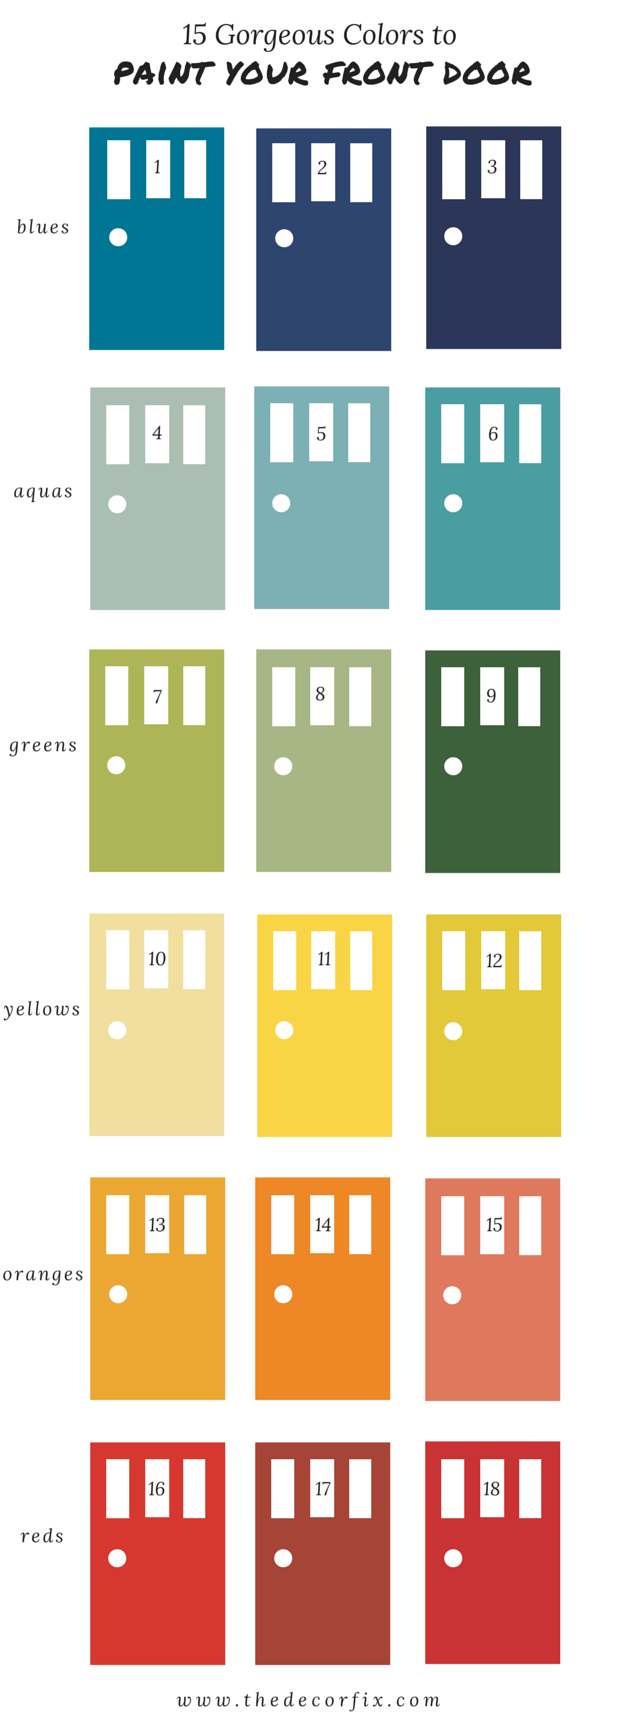 15 Gorgeous Colors To Paint Your Front Door A Designers Tops Picks